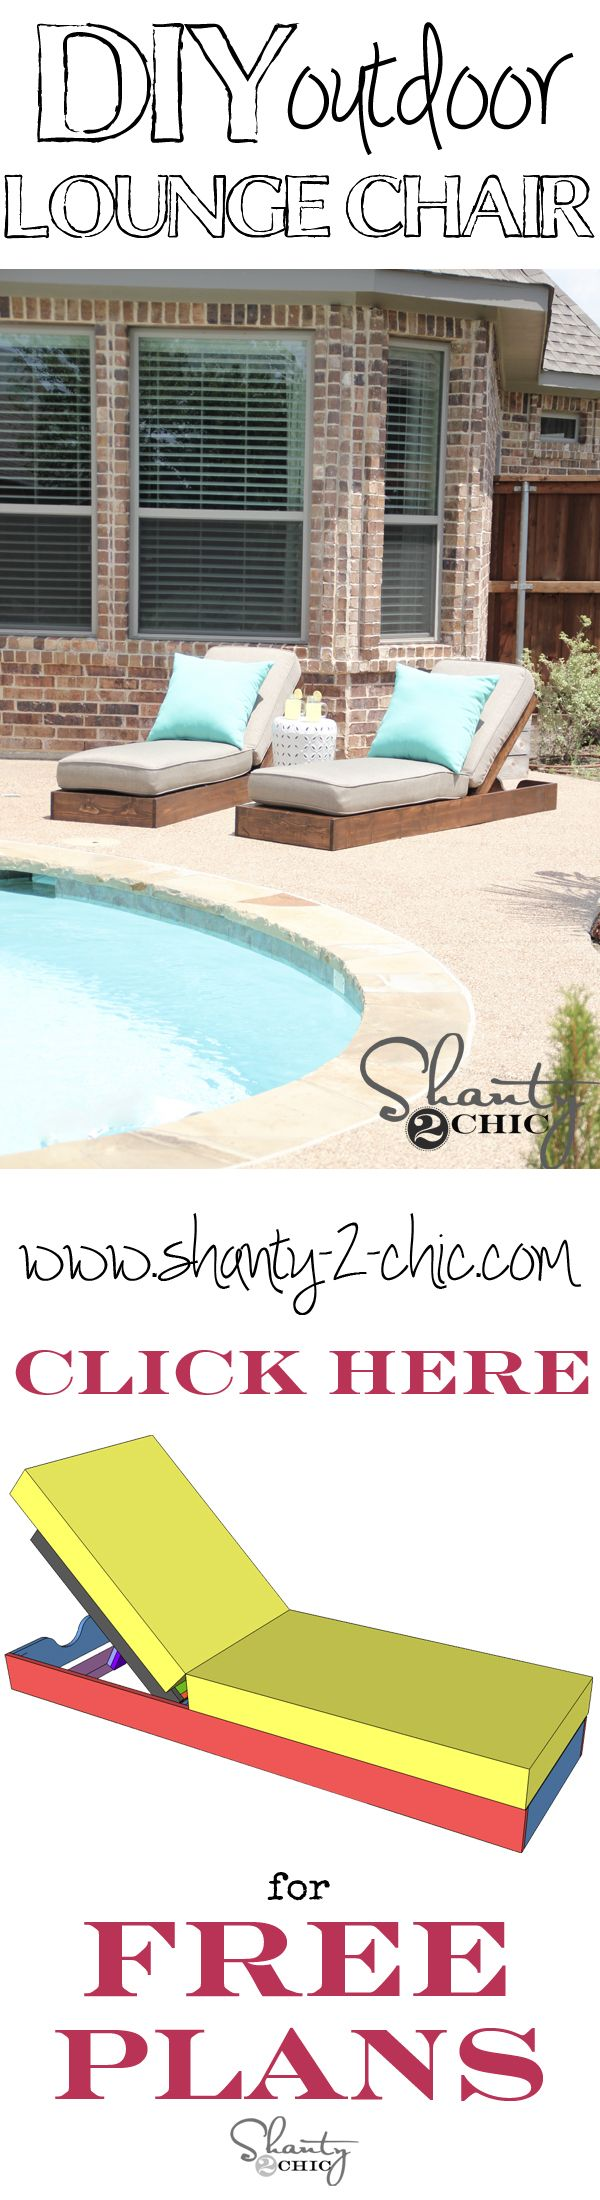 Build Your Own Custom Outdoor Lounge Chairs With Free Plans From  Shanty 2 Chic